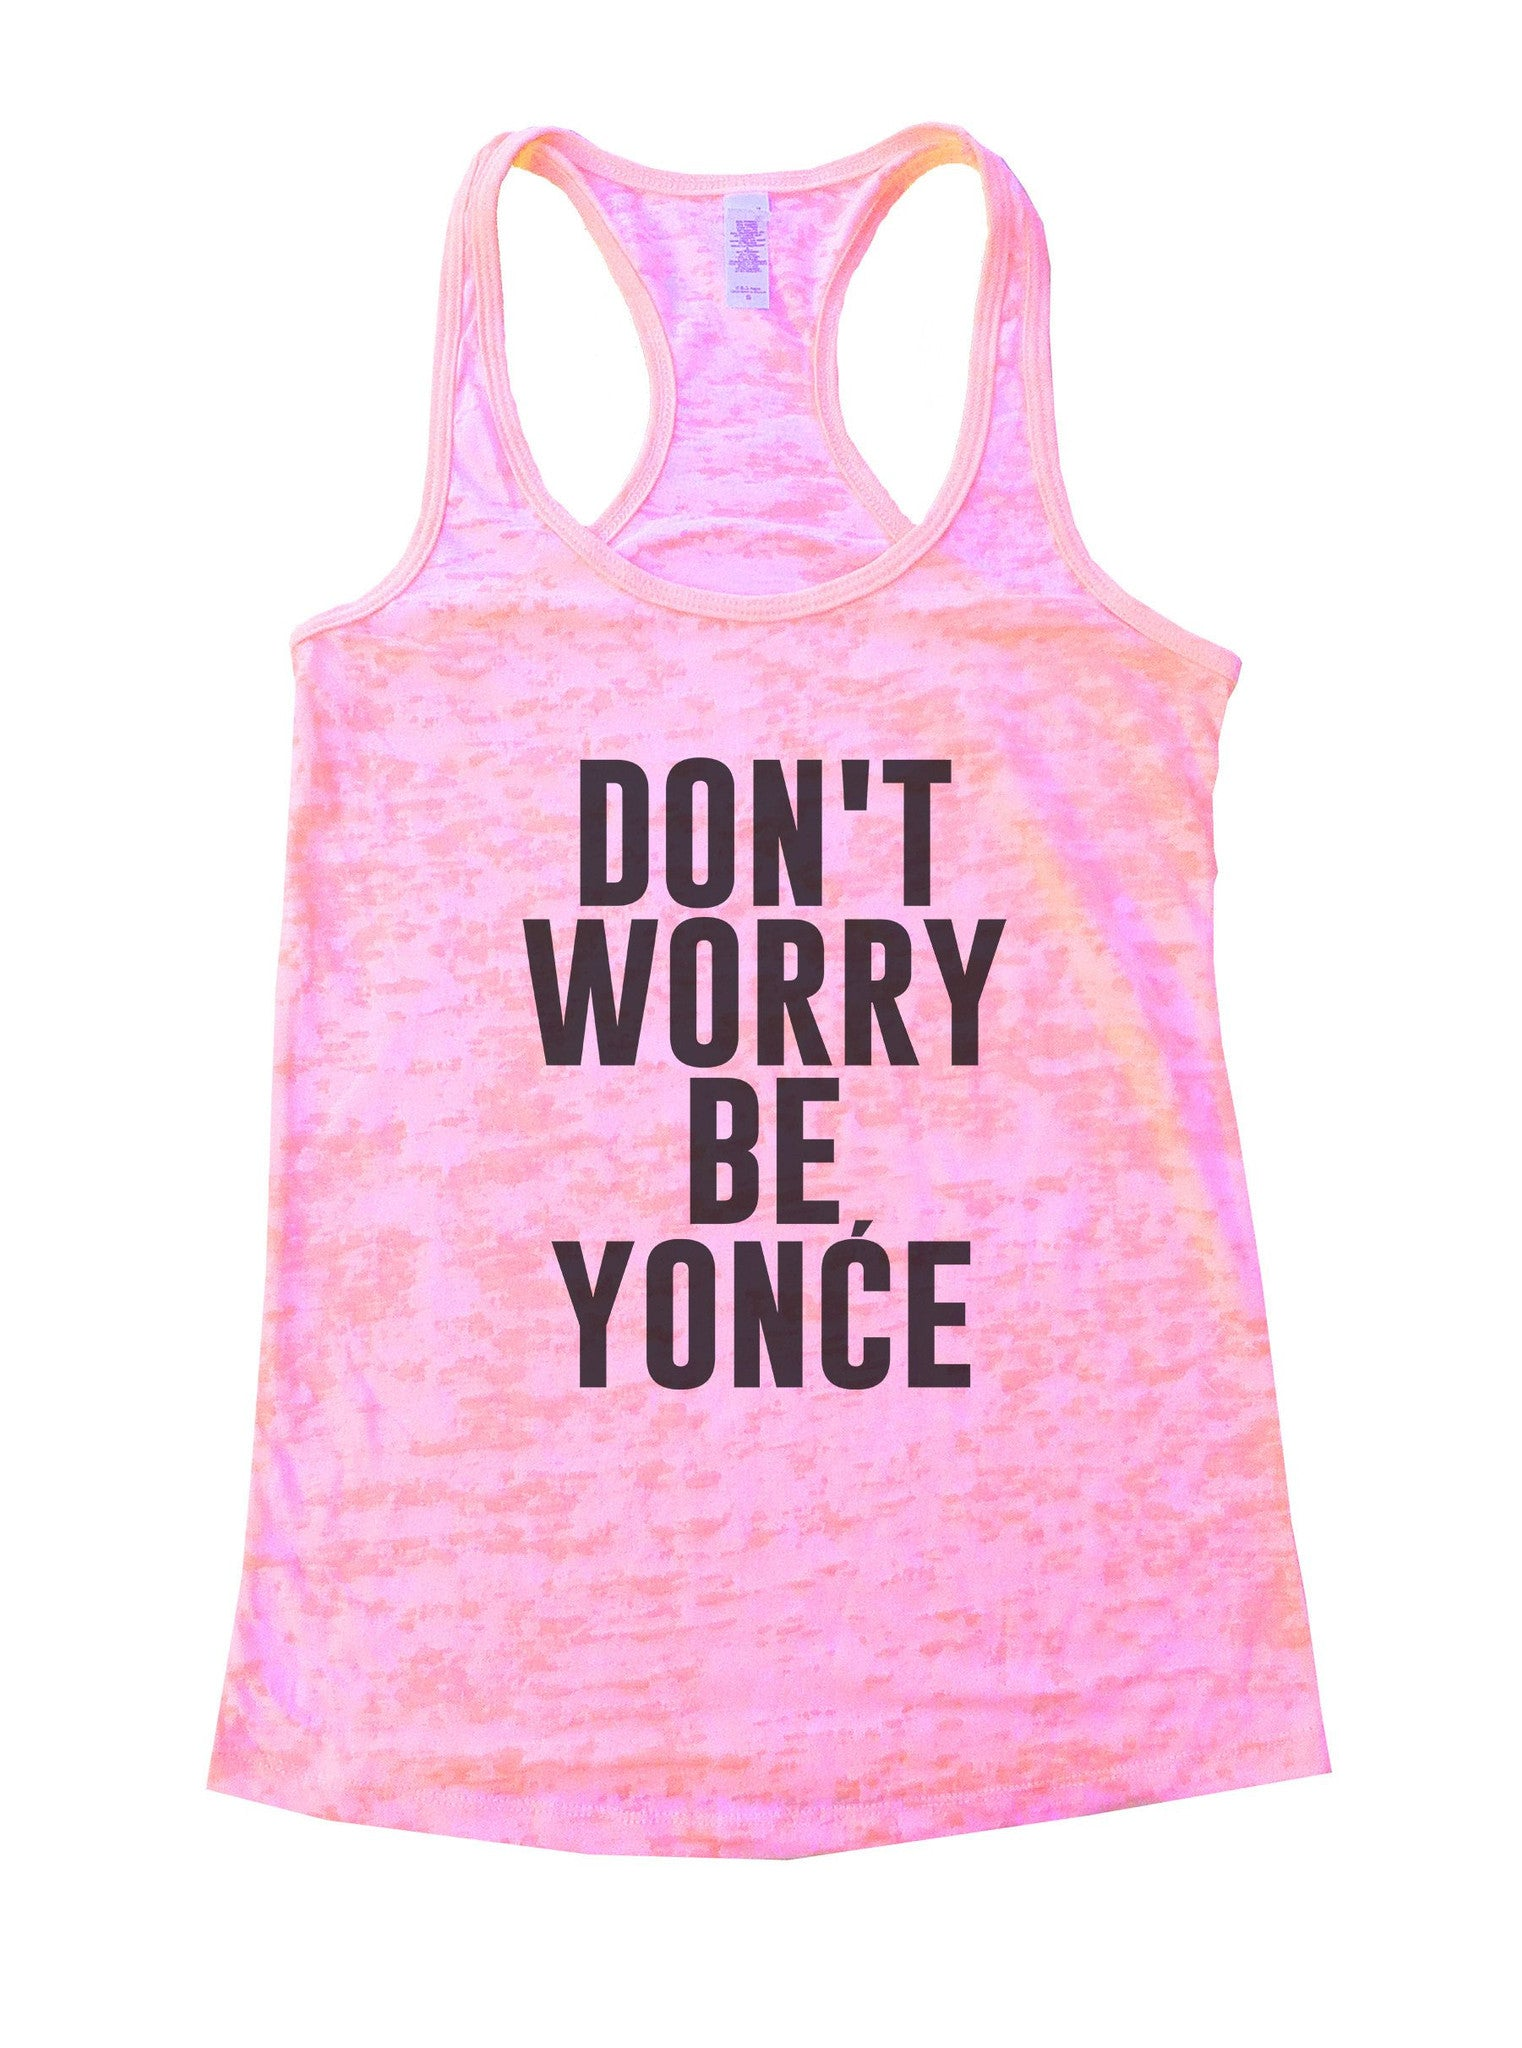 Don't Worry Be Yonce Burnout Tank Top By BurnoutTankTops.com - 934 - Funny Shirts Tank Tops Burnouts and Triblends  - 2